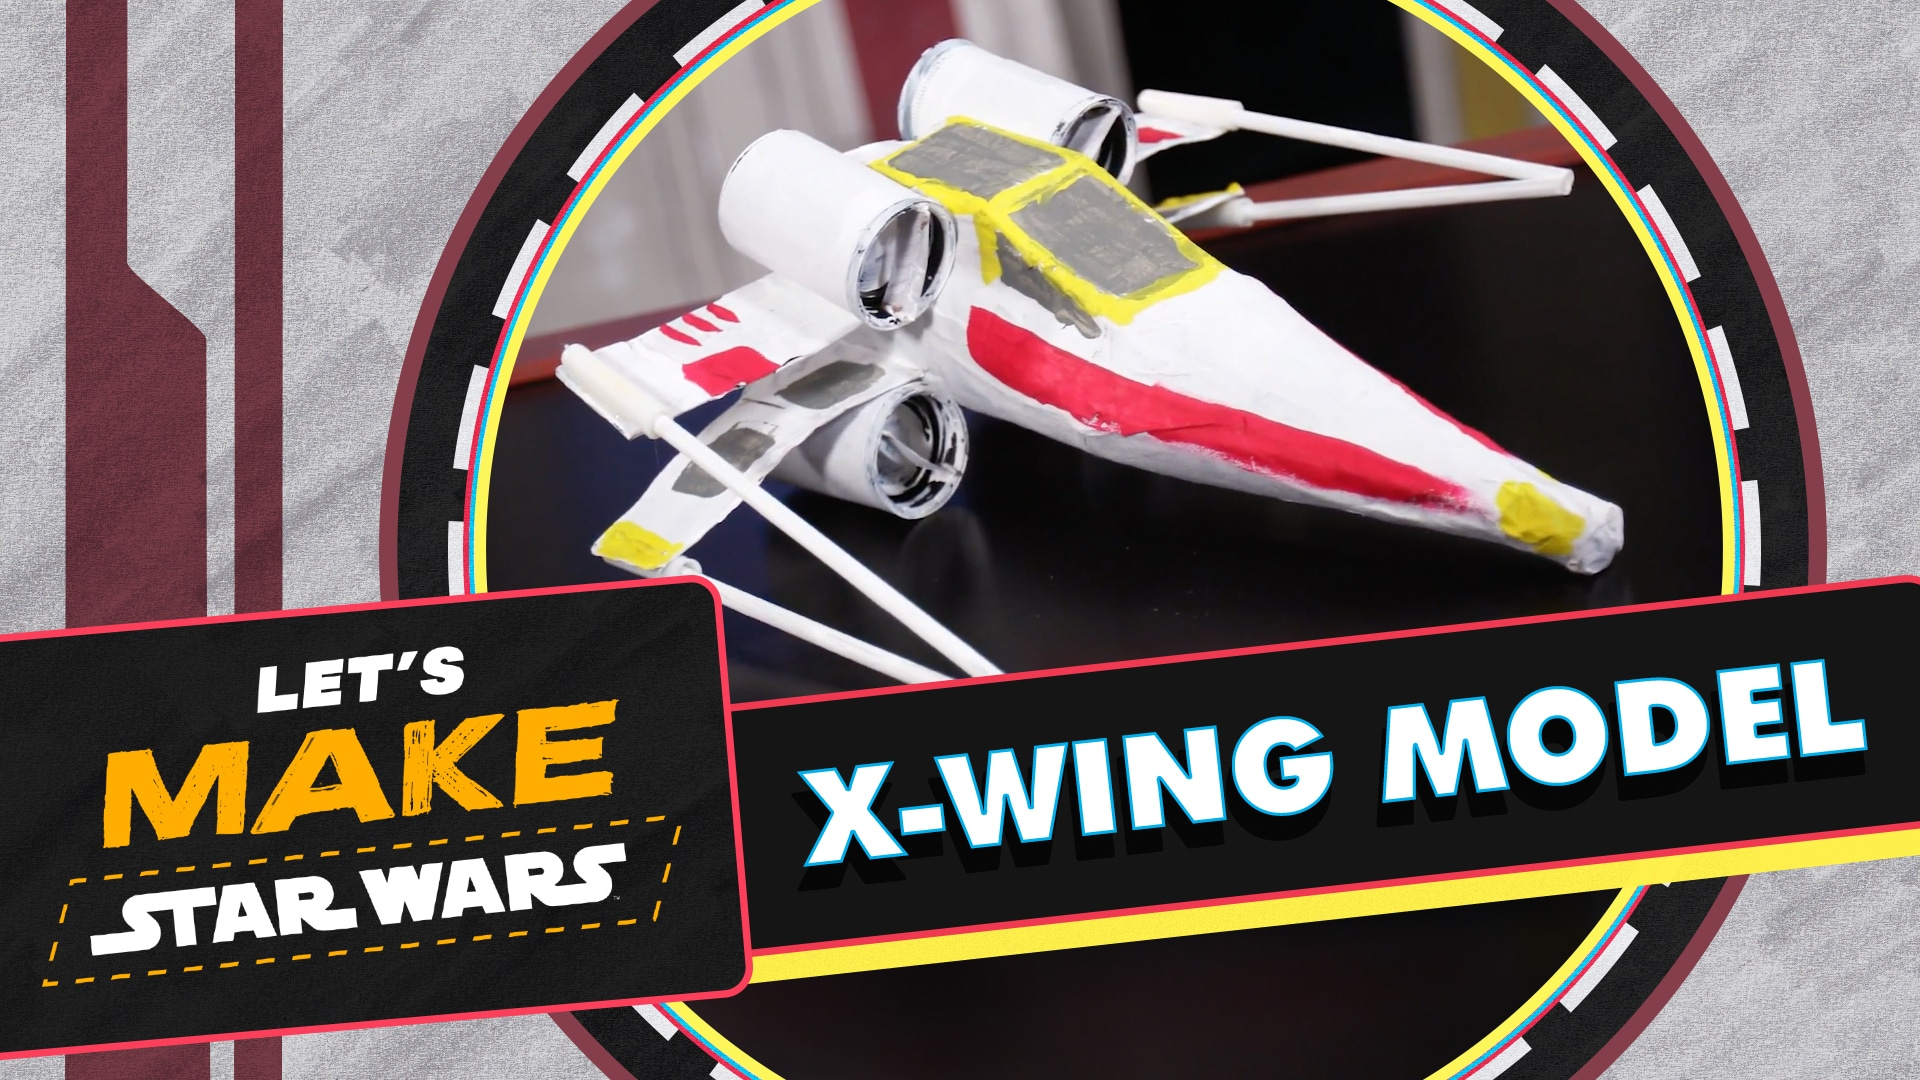 How to Make a Cardboard X-Wing | Let's Make Star Wars